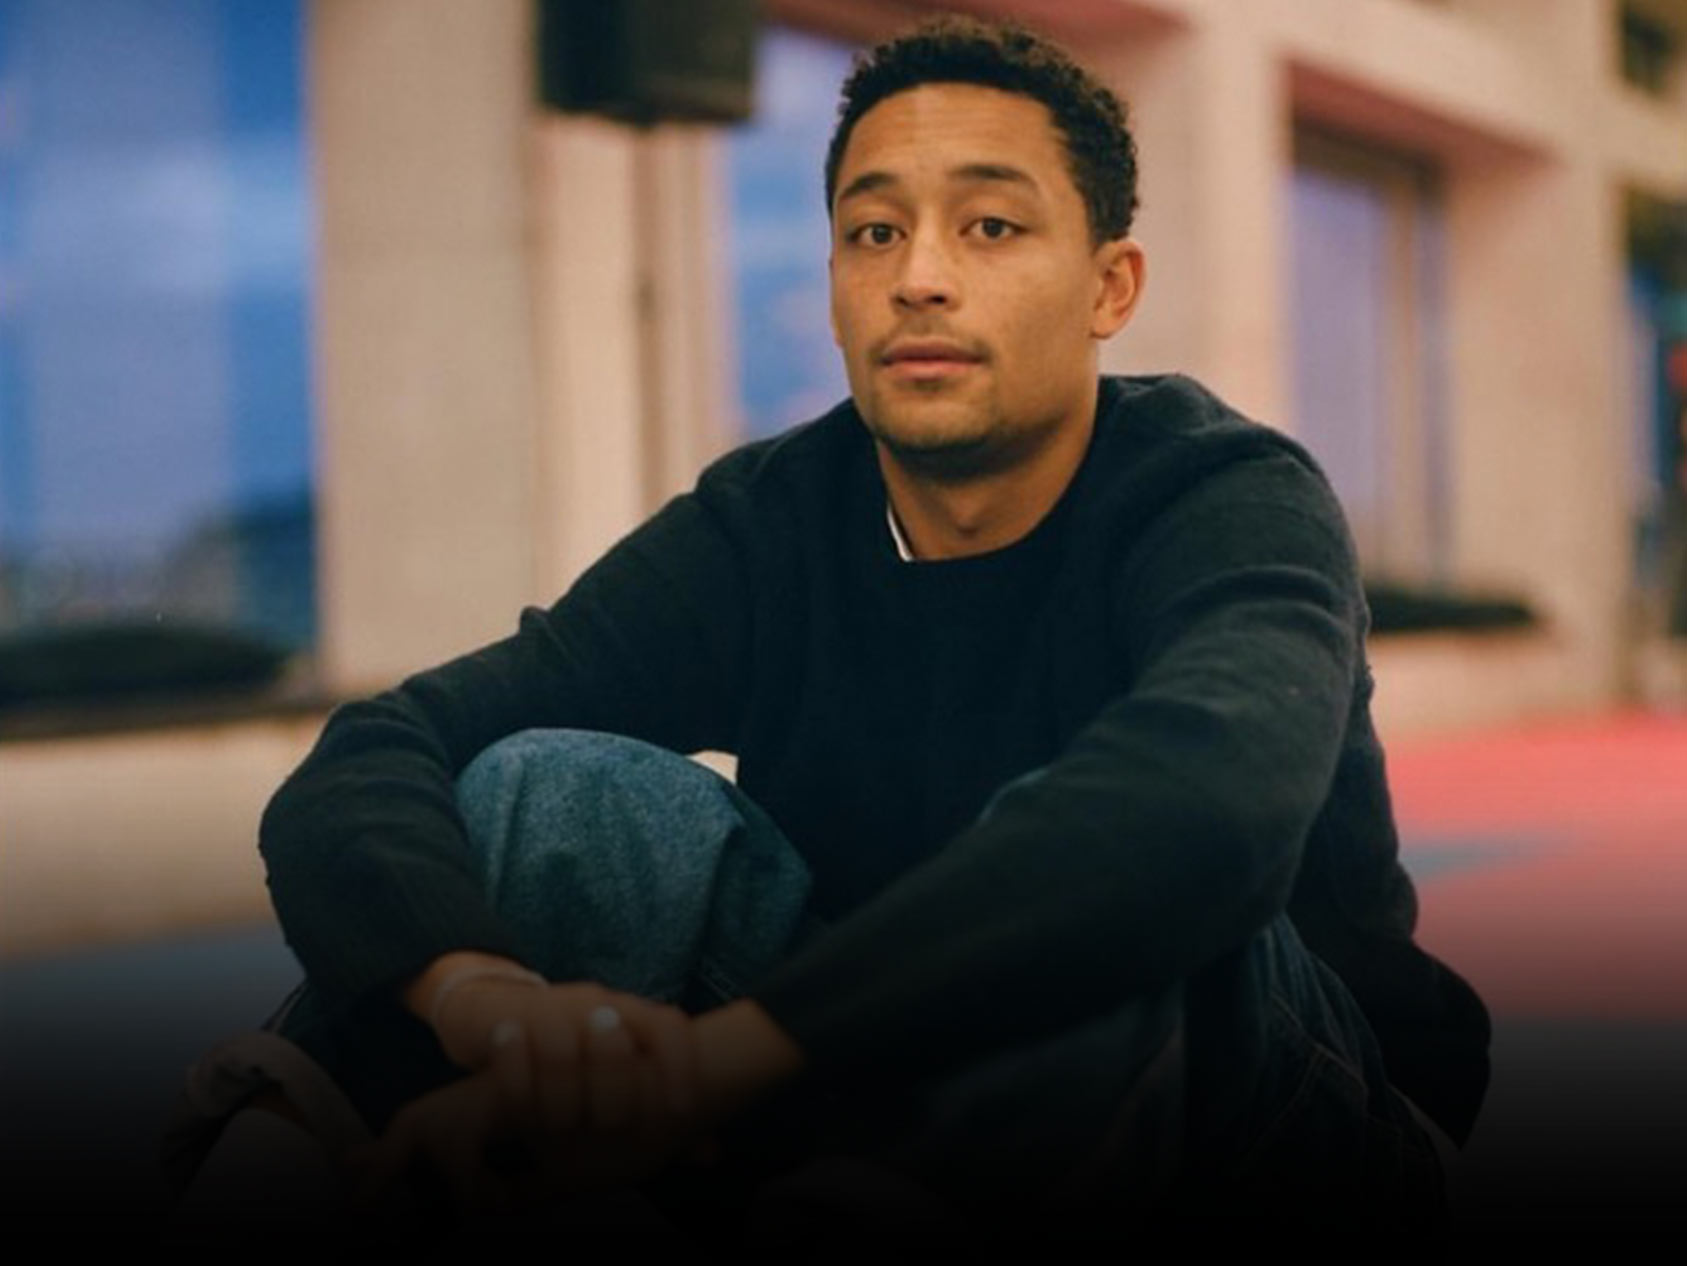 Loyle Carner Fronts Timberland's Latest Sustainability Campaign